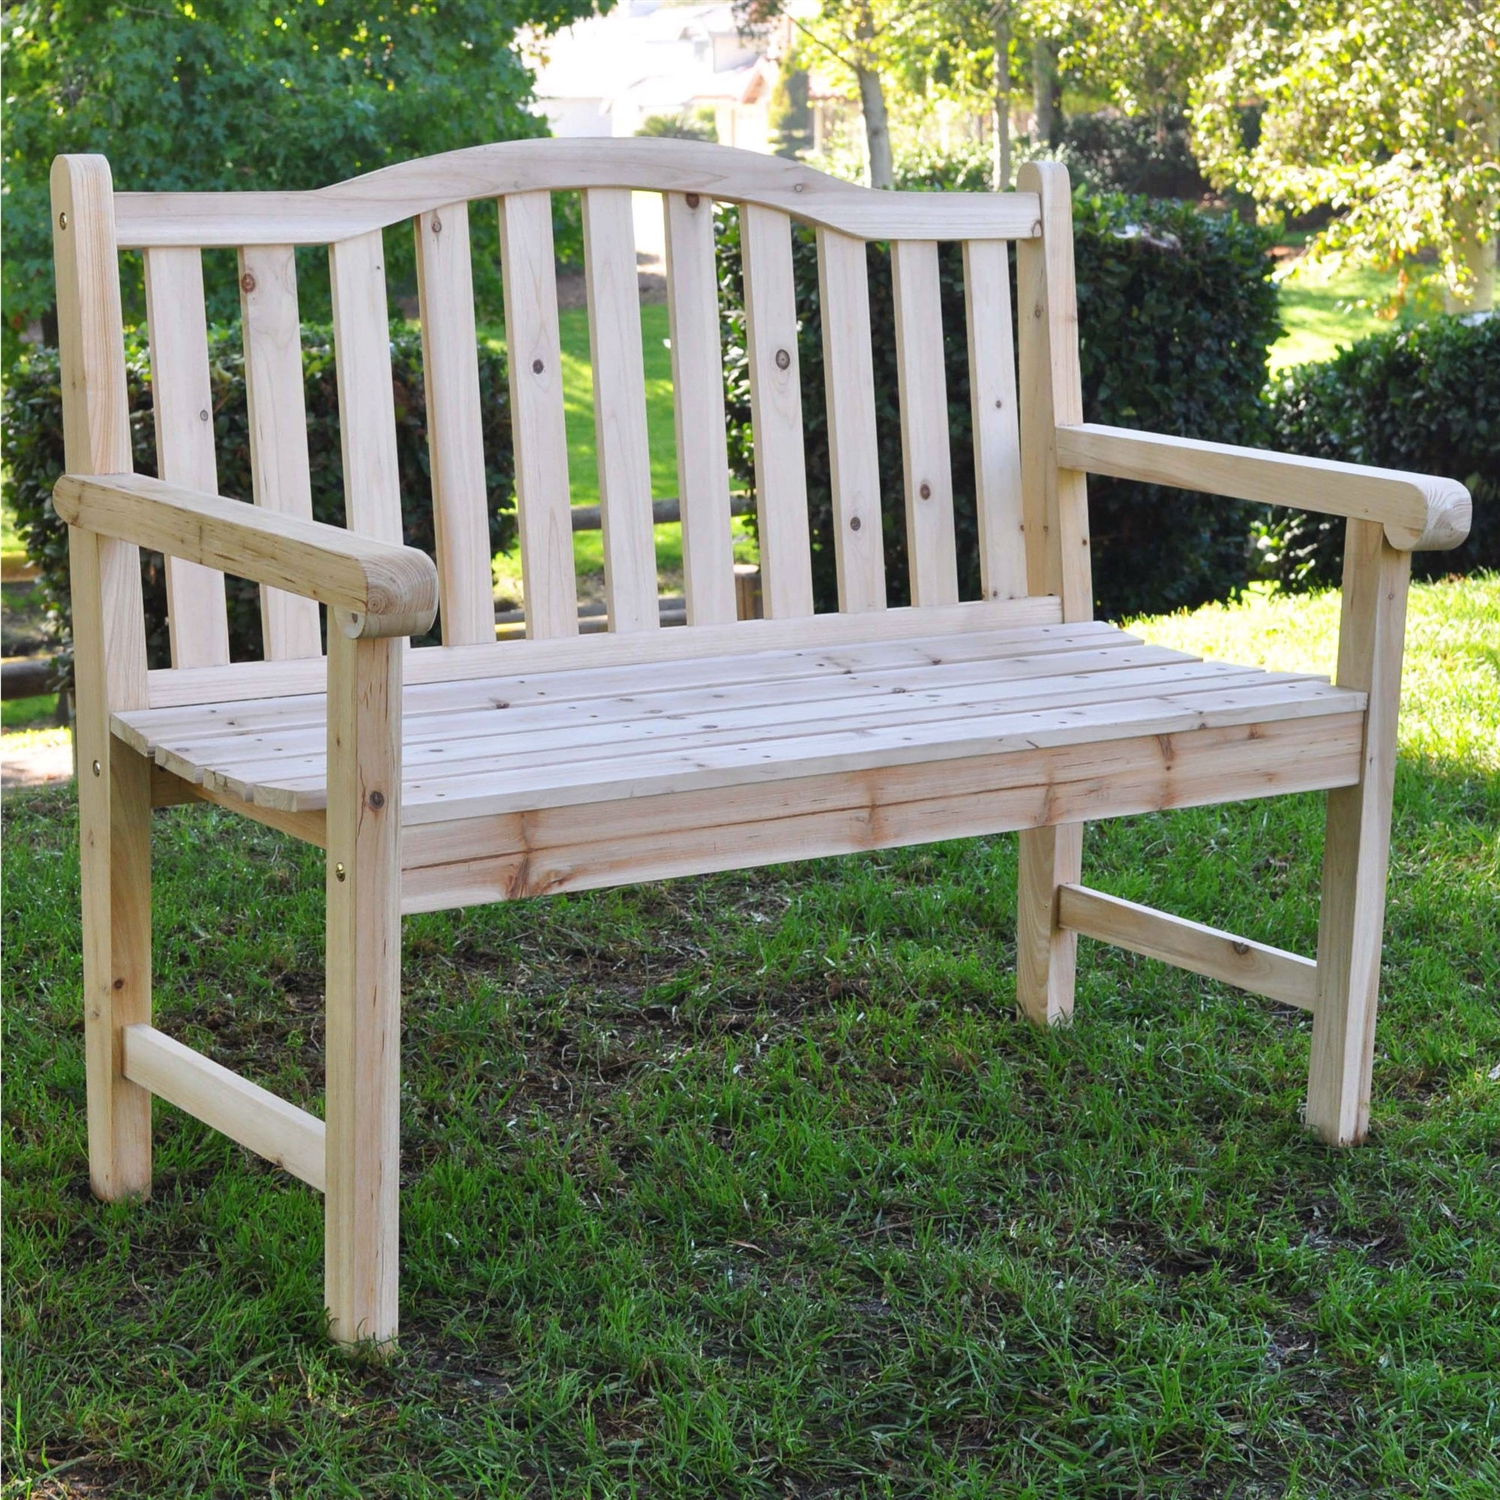 Outdoor Cedar Wood Garden Bench in Natural with 475lbs. Weight Limit, BWGBN1394 :  This Outdoor Cedar Wood Garden Bench in Natural with 475lbs. Weight Limit would be a great addition to your home. It is recommended that you apply one coat of wood seal on unfinished cedar wood furniture the first year, and for painted furniture apply one coat of polyurethane annually for protection against weather, heat and sunlight. If the furniture is to be placed in direct sunlight or excessive temperatures it is best to apply 1 or 2 coats of polyurethane prior to use. For added longevity it is best to place furniture in a shady area. To clean use a soft cloth and water. Let the wood air dry. As cedar wood ages naturally, its rustic character will be enhanced. Due to the nature of wood, surface cracking and slight color variations will occur. The wood and the product will remain structurally sound for years. Assembly Required: Yes; Tools Needed for Assembly: Screwdriver ; Product Warranty: 1 year warranty; Style: Contemporary; Seating Capacity: 2; Weight Capacity: 475lbs. Commercial Use: Yes; Country of Manufacture: China.